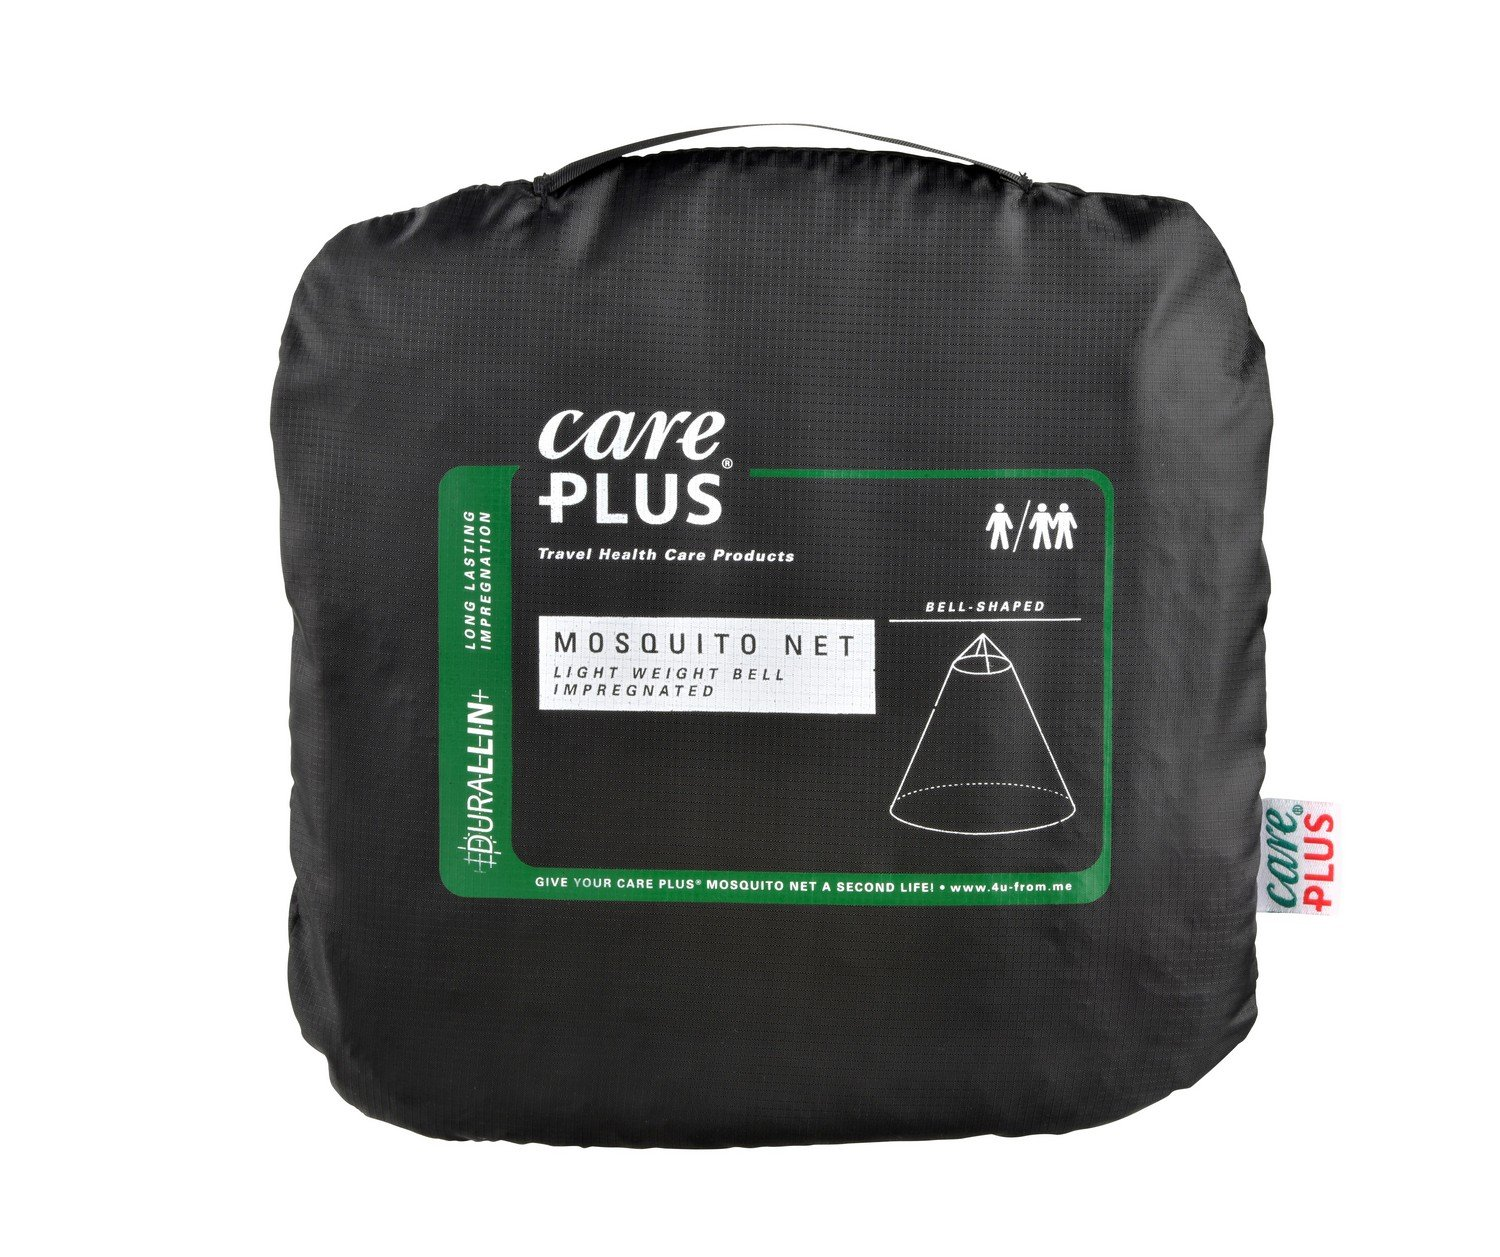 Care Plus Mosquito Net Light Weight Bell DuraSec Allin